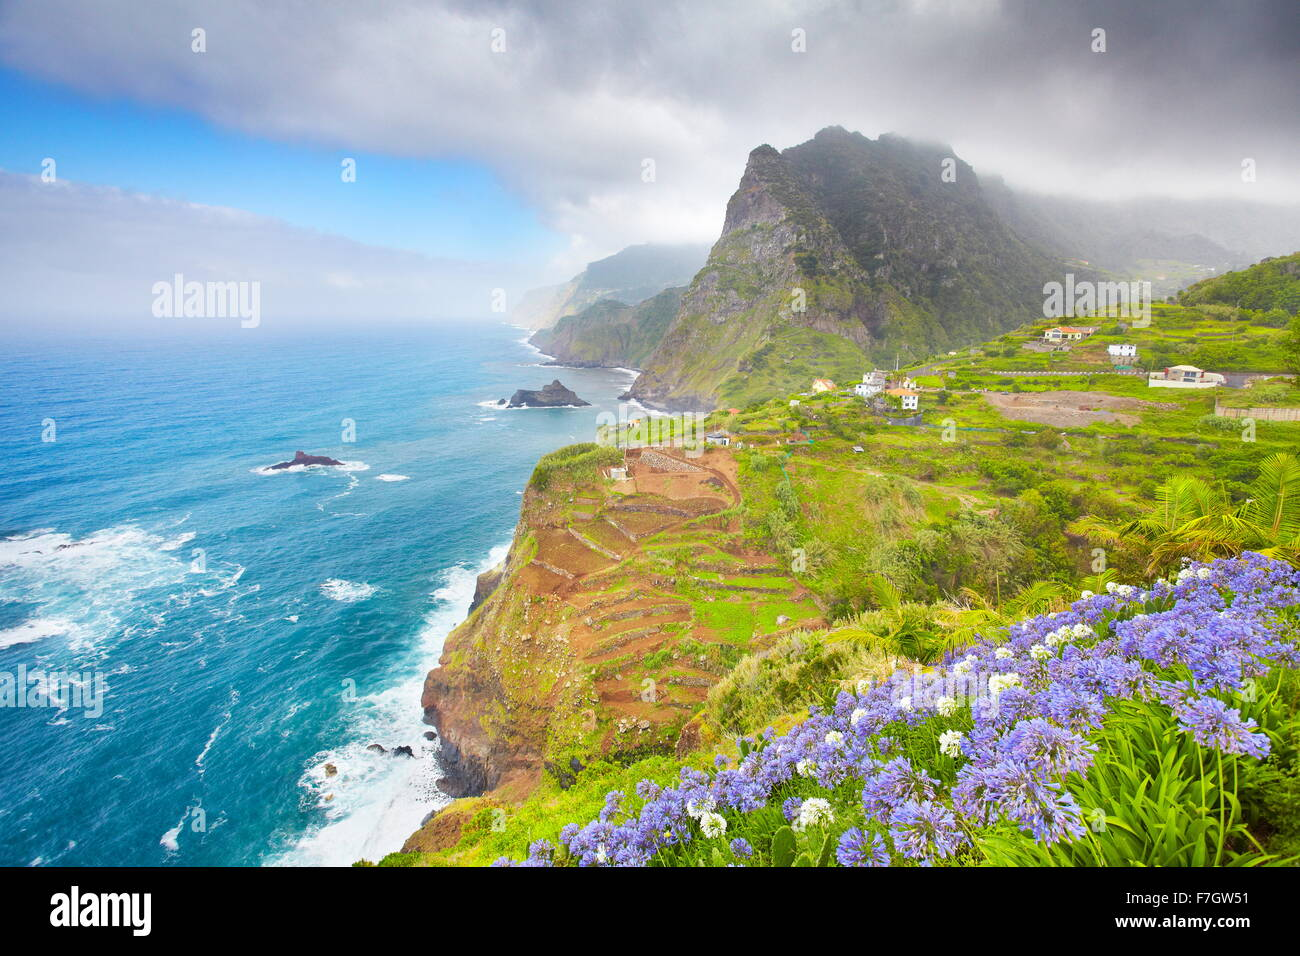 Madeira - landscape of cliff coast near Ponta Delgada, Madeira, Portugal - Stock Image